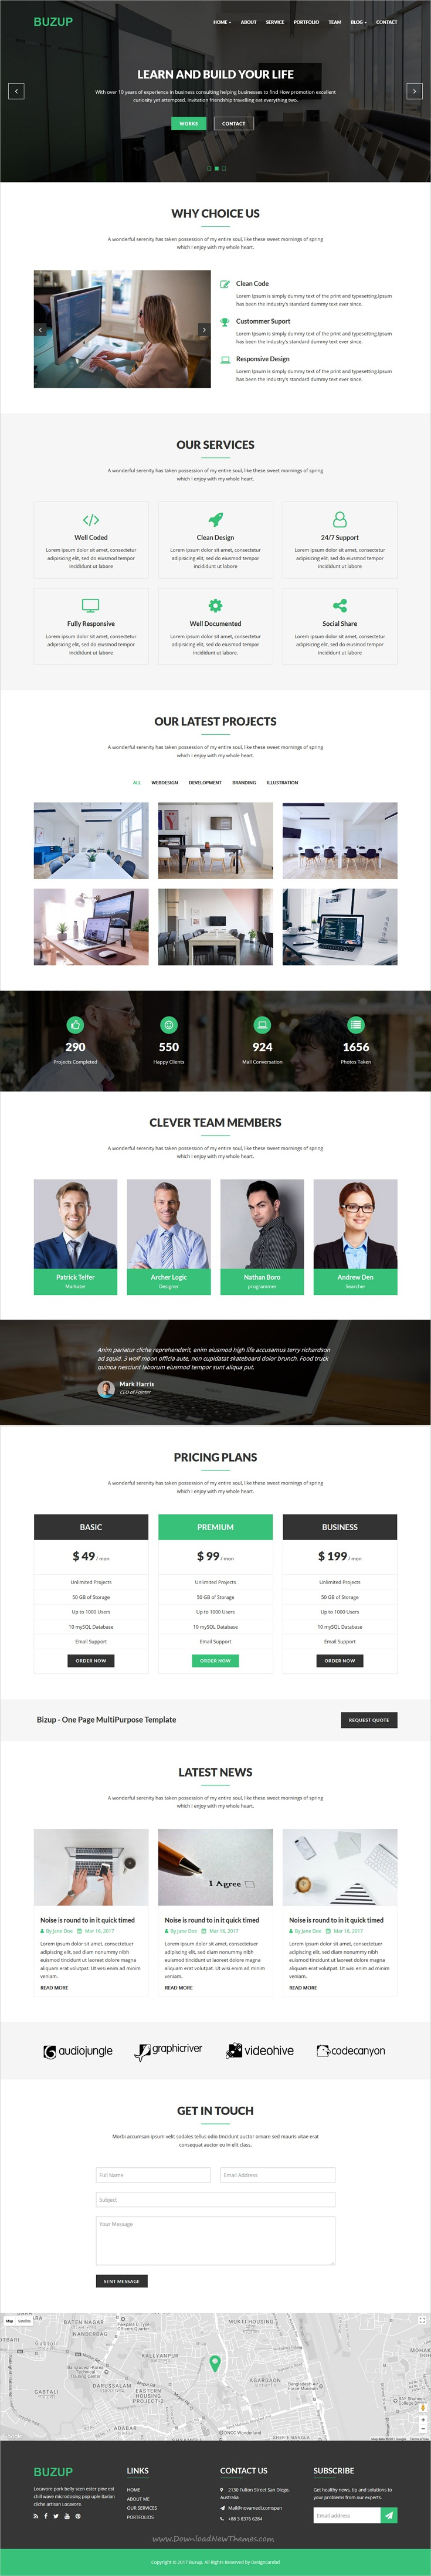 Buzup is clean and modern design 2in1 responsive bootstrap template